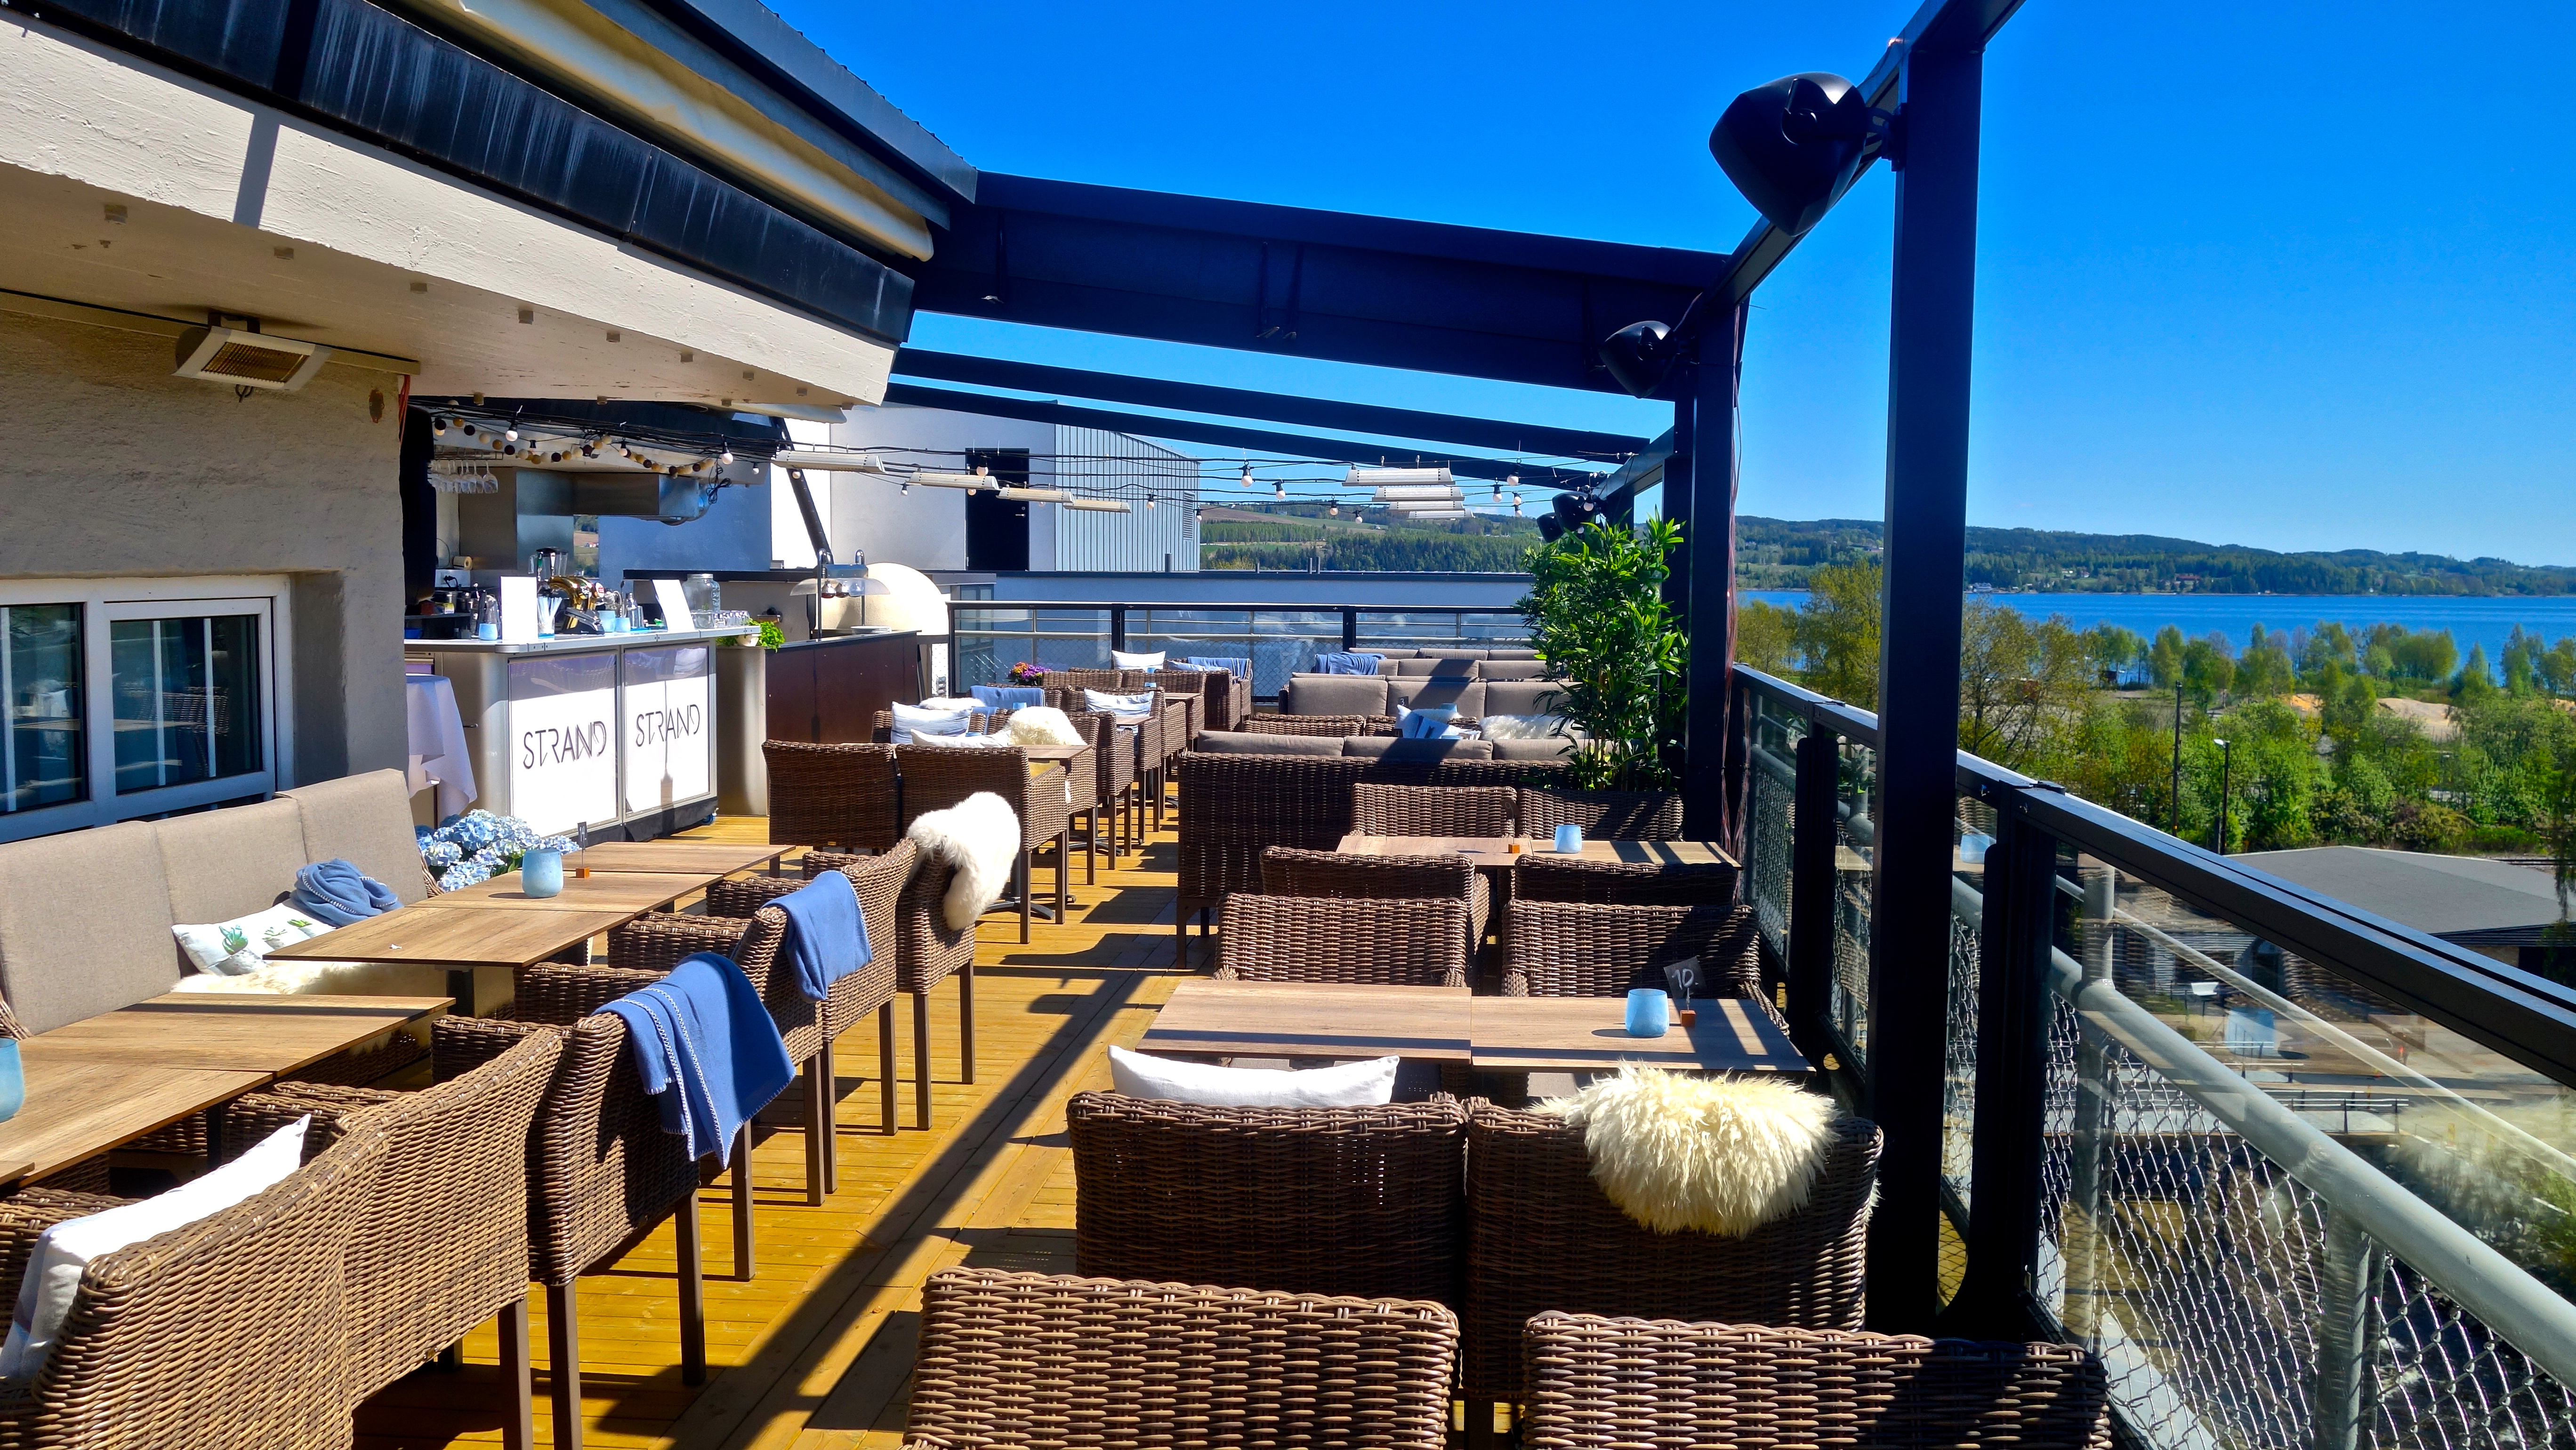 Rooftop-terrace-Cafepi-Pitaket-sitting-Bar-quality-hotel-strand